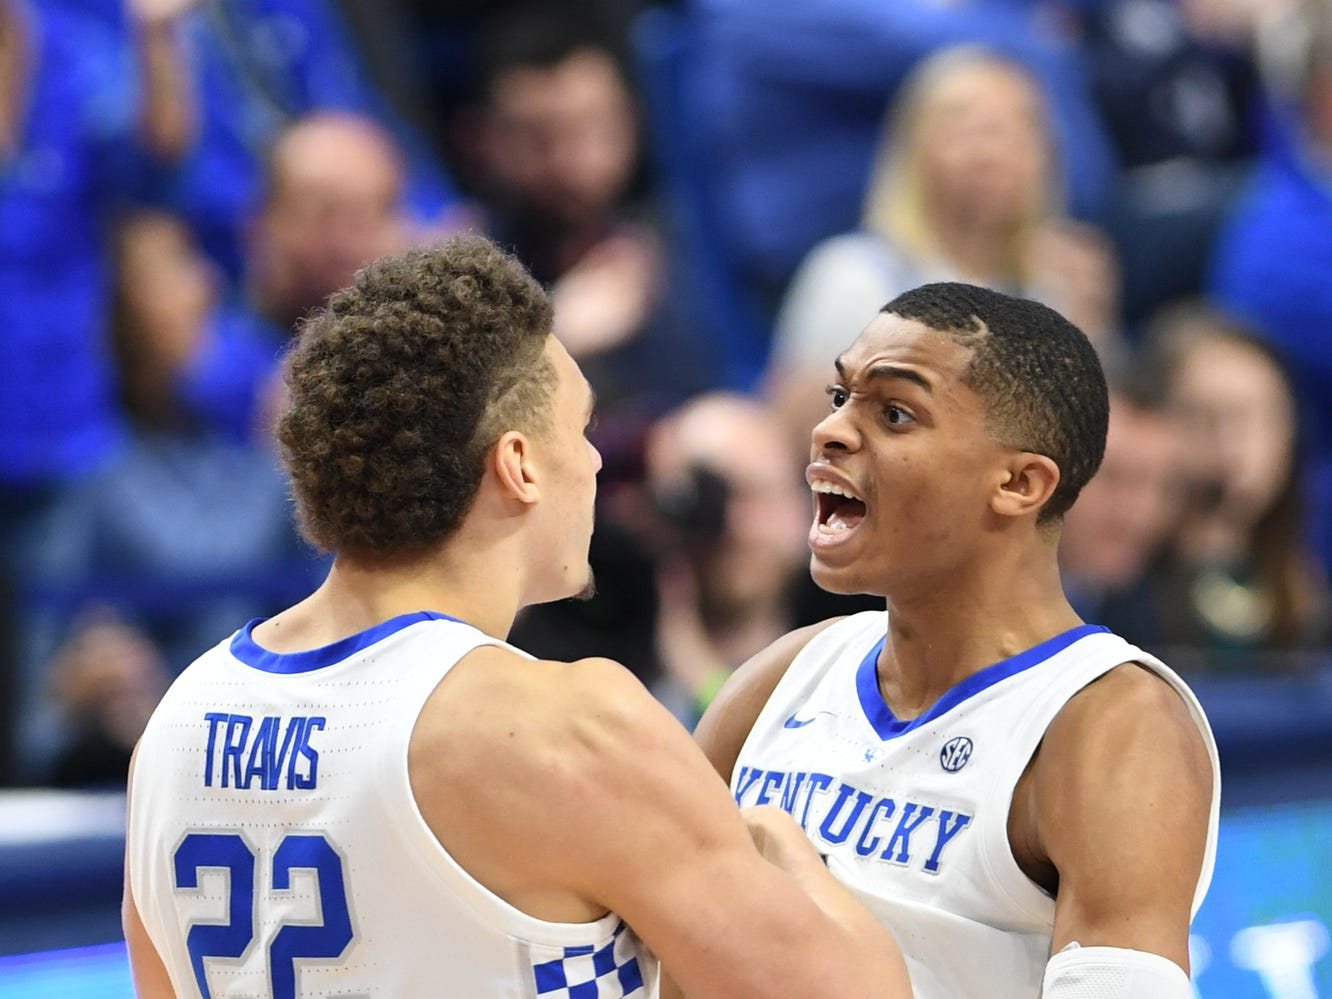 UK forward Reid Travis and guard Keldon Johnson celebrate during the University of Kentucky men's basketball game against Tennessee State at Rupp Arena in Lexington, Kentucky, on Friday, Nov. 23, 2018.